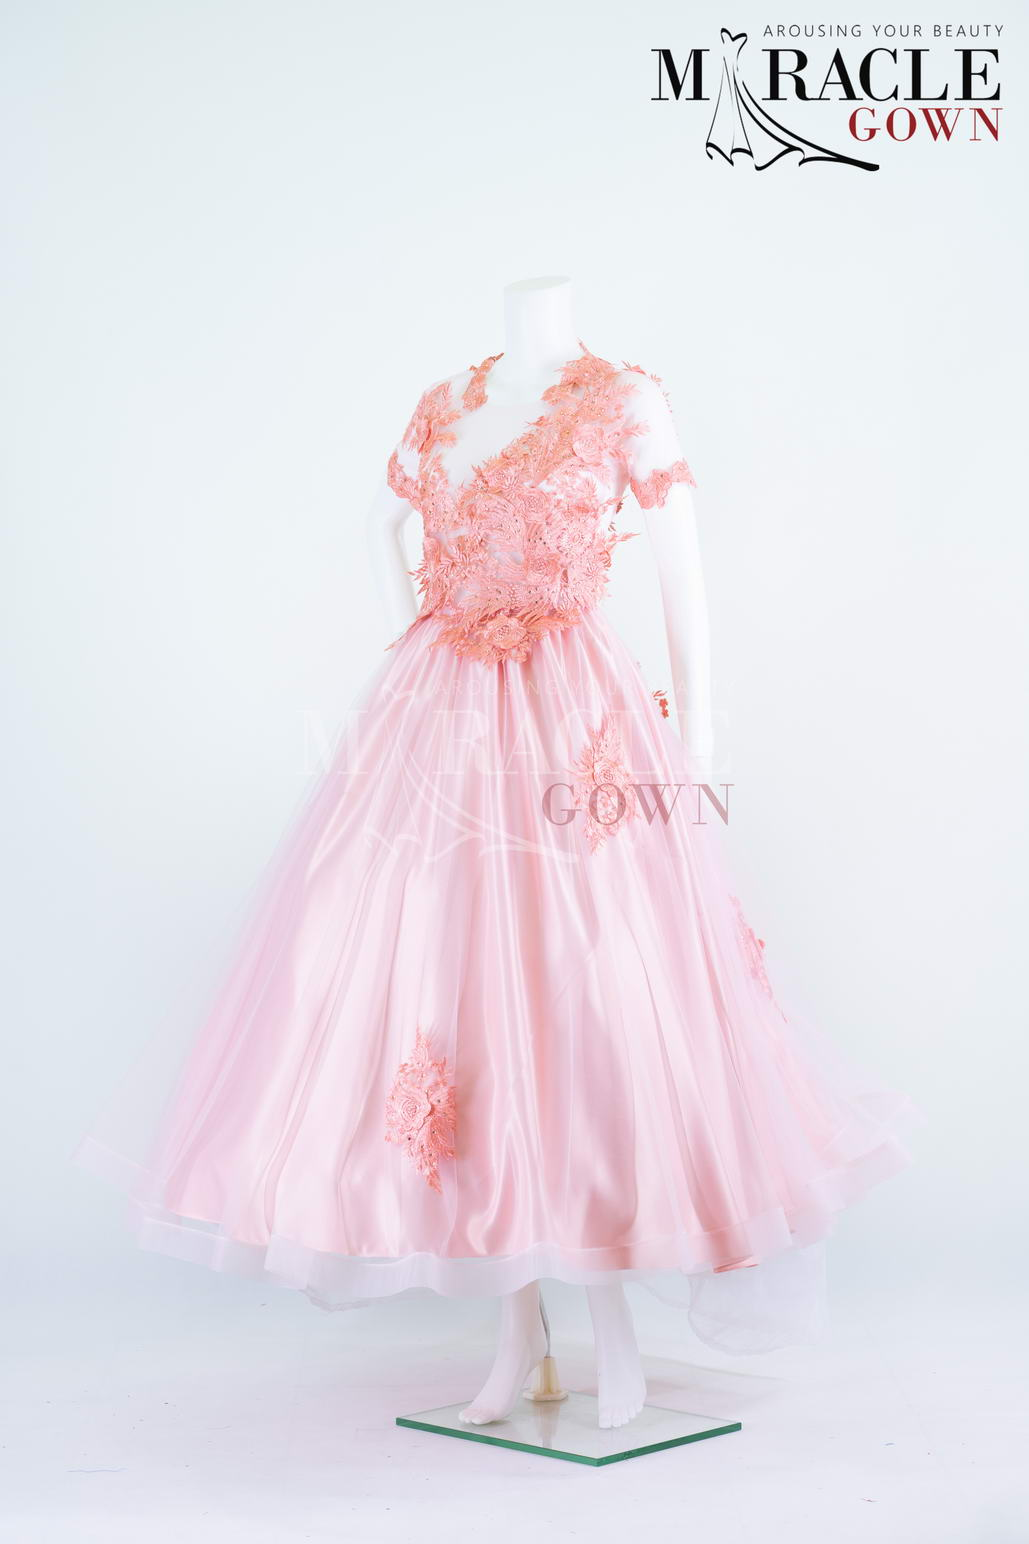 Sewa Gaun Surabaya - Miracle Gown - Vivid carnation brocade on sheer flare gown